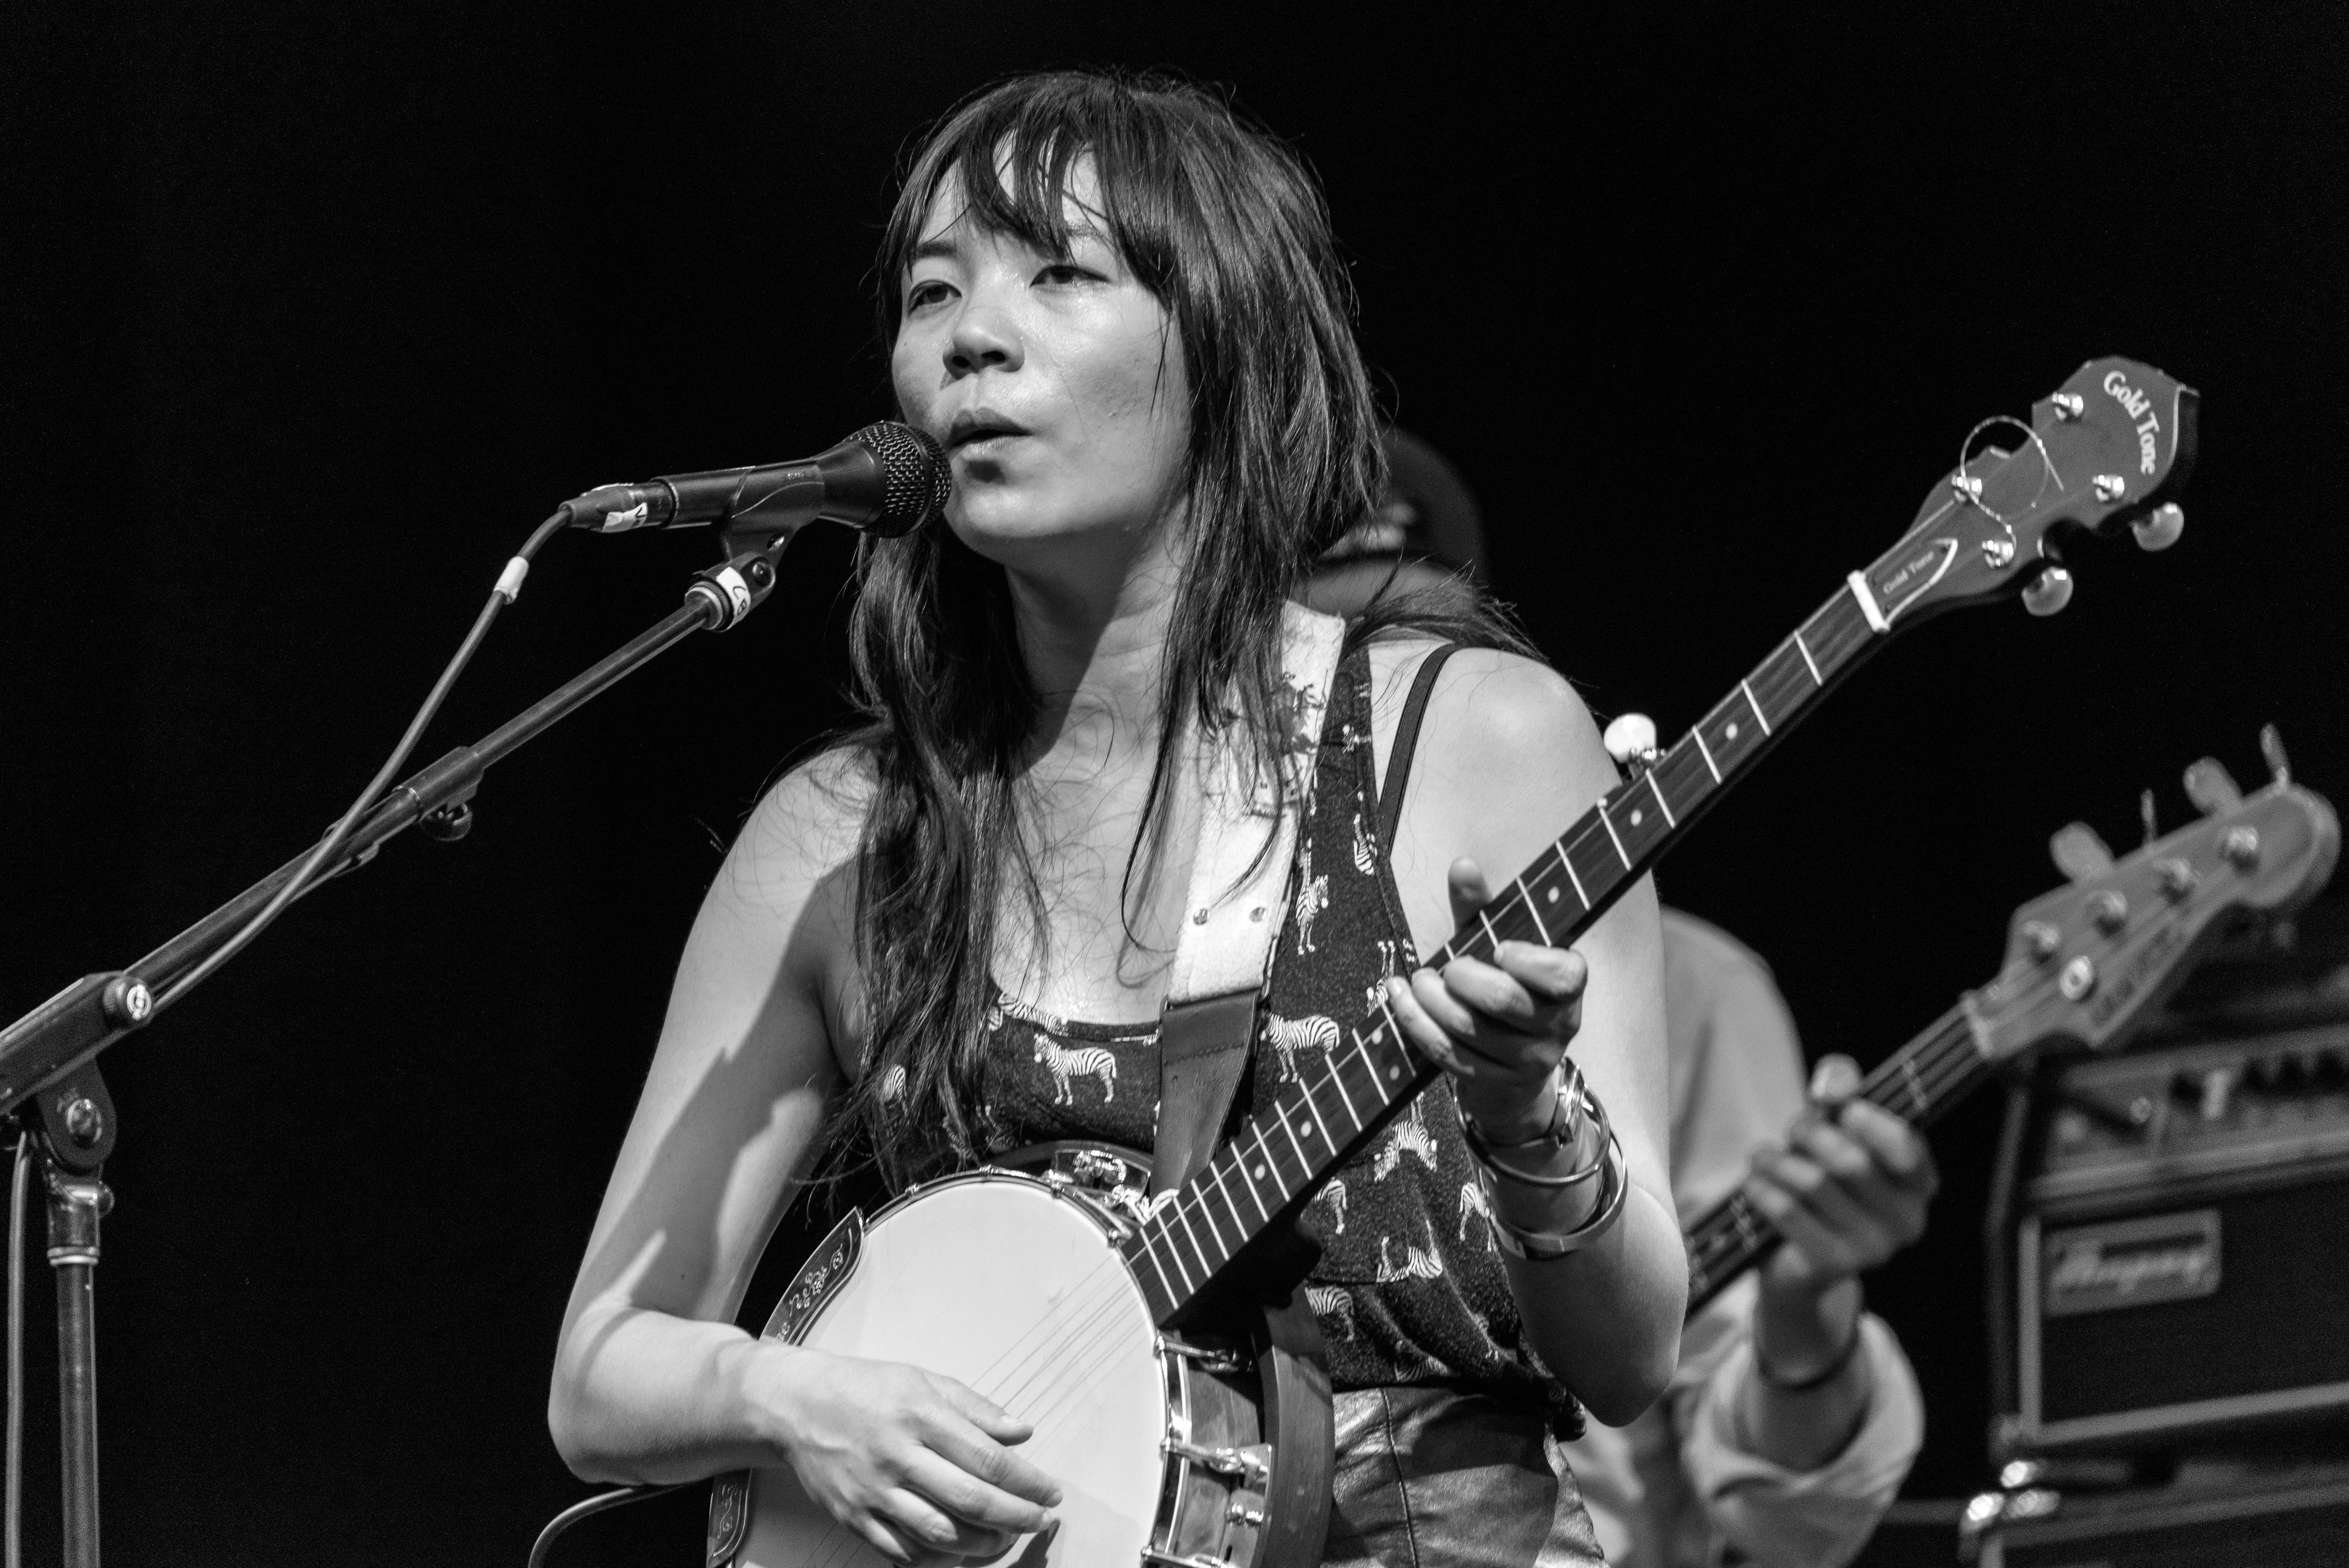 Music - Thao & The Get Down Stay Down - Prospect Park Bandshell - Celebrate Brooklyn